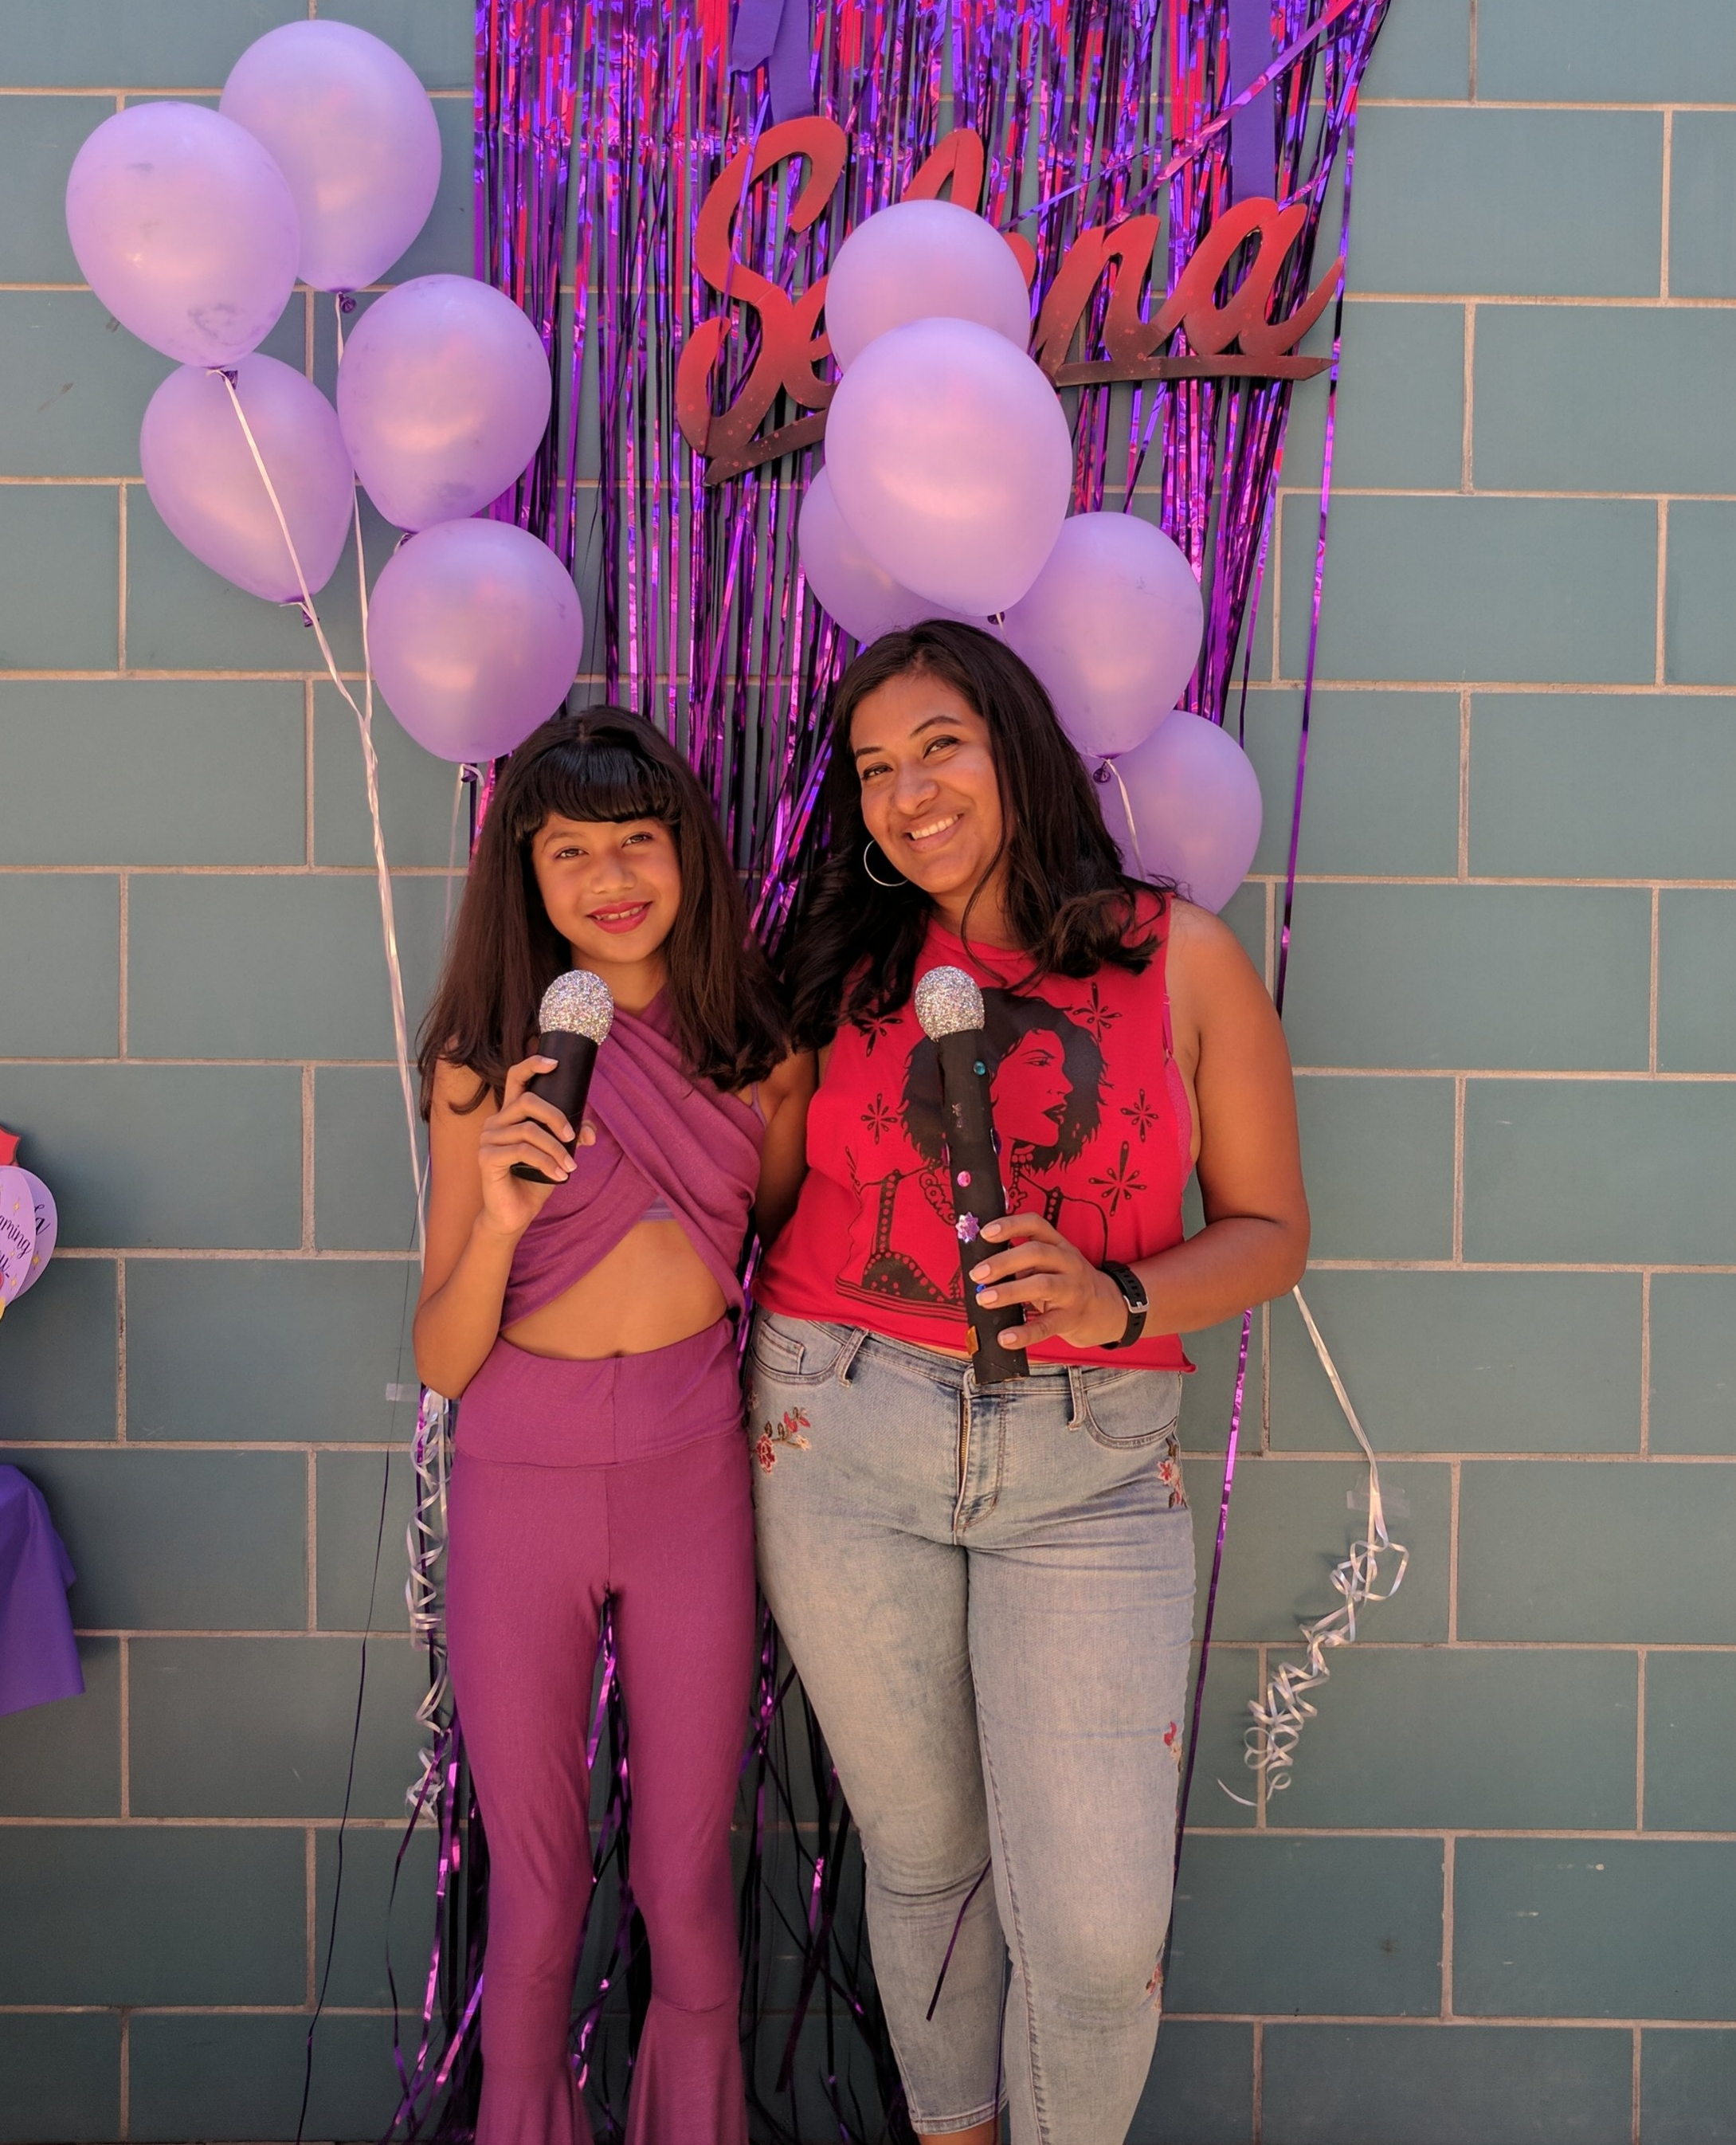 """10-year old Lucia with her mom Amorette posing to make new """"Fotos y Recuerdos"""" ( Pictures & Memories , a popular song from Selena's hit album  Amor Prohibido )."""